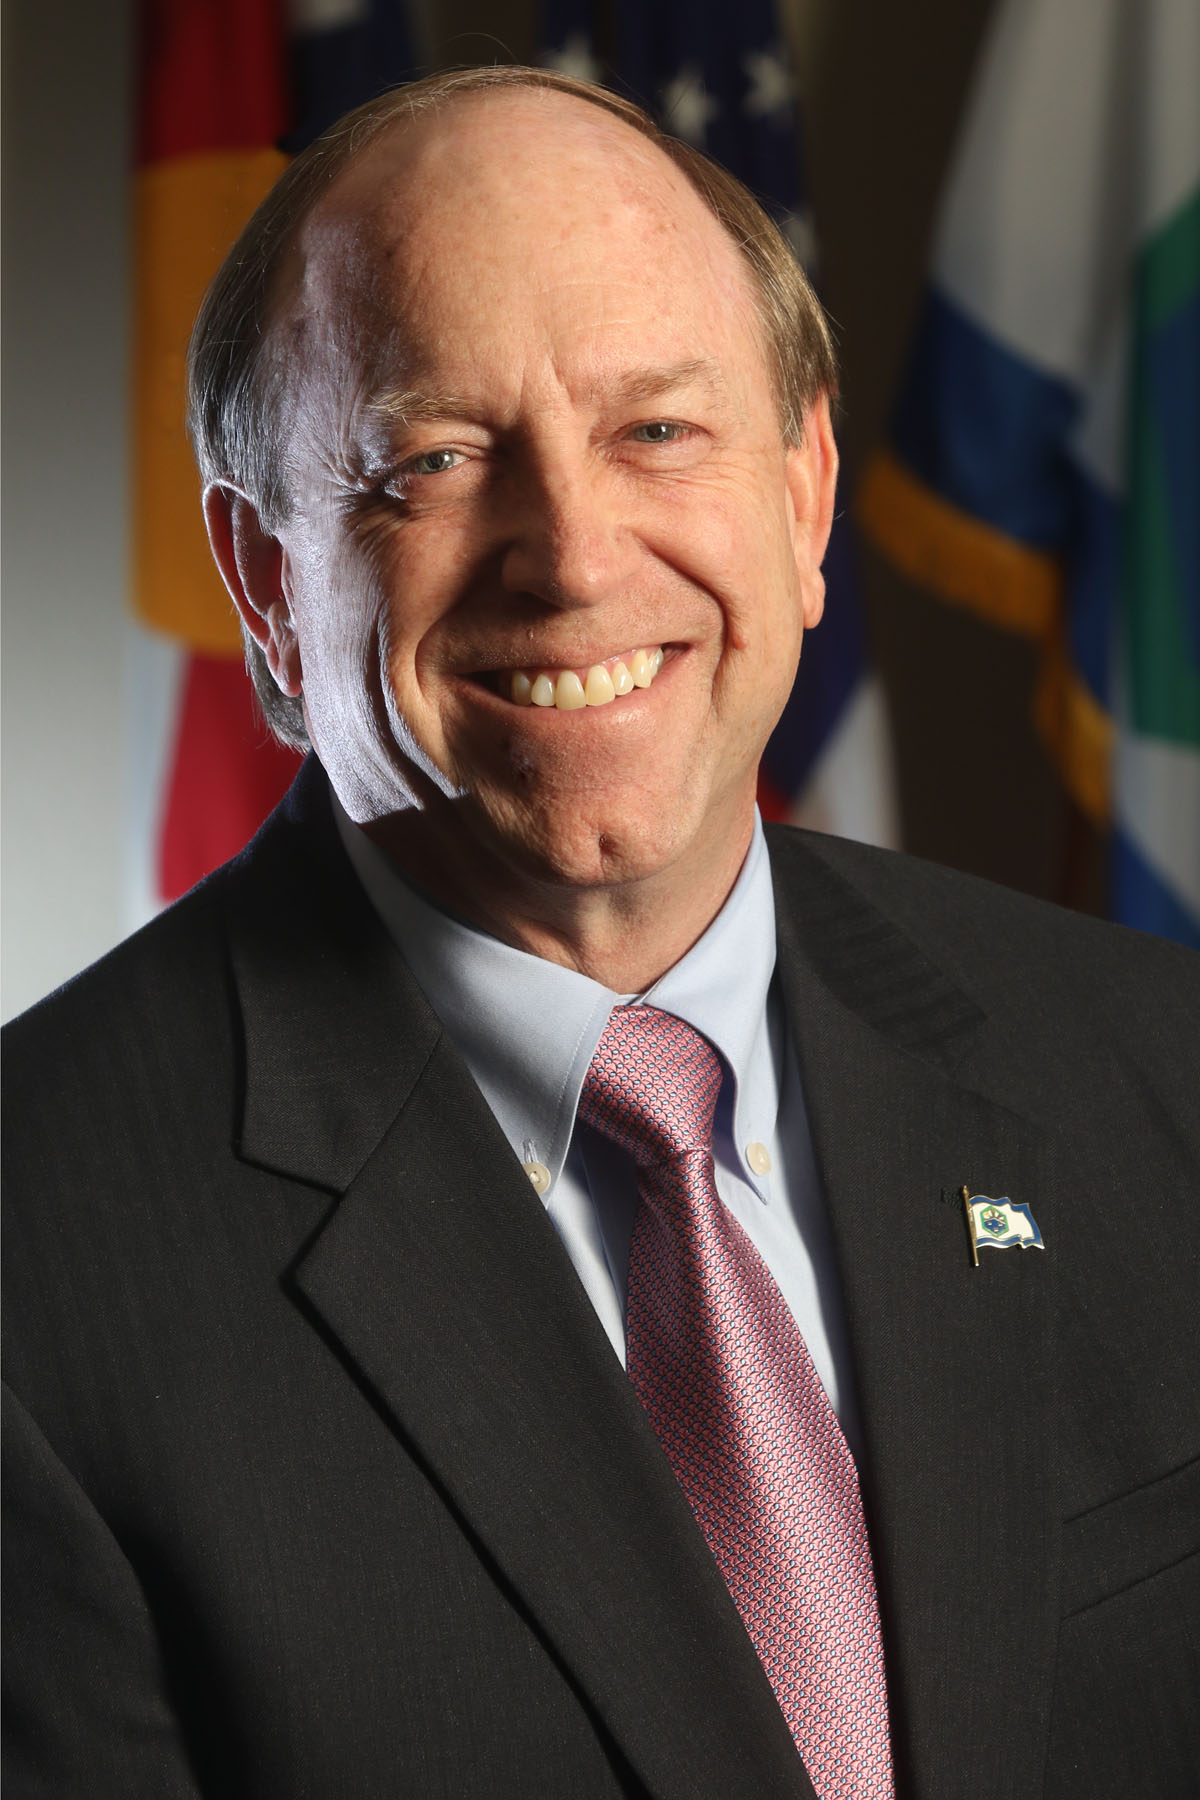 Photo: Colorado Springs Mayor John Suthers